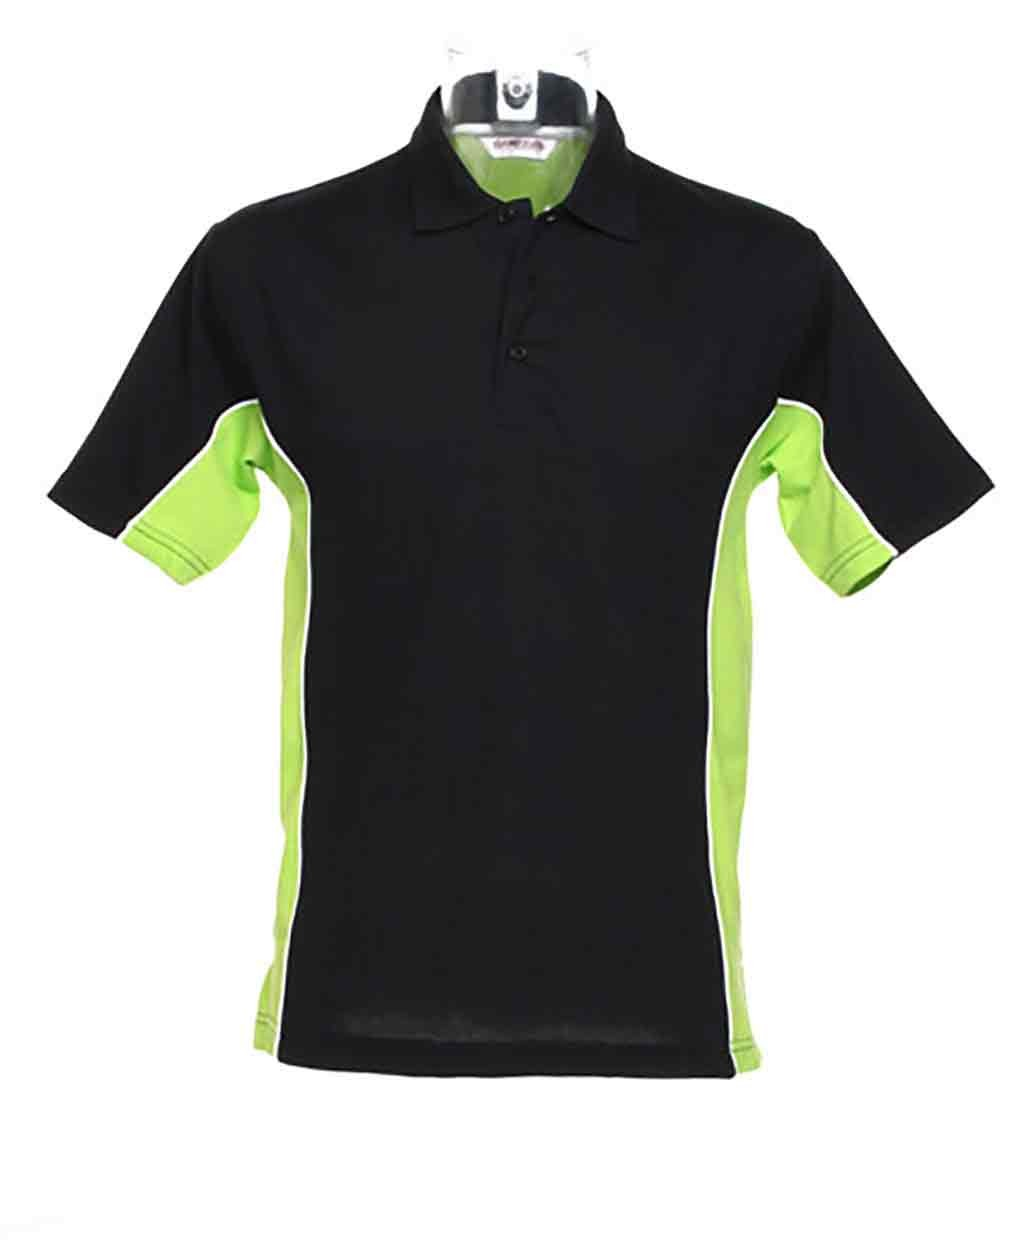 Black And Neon Green Polo Shirt Bcd Tofu House